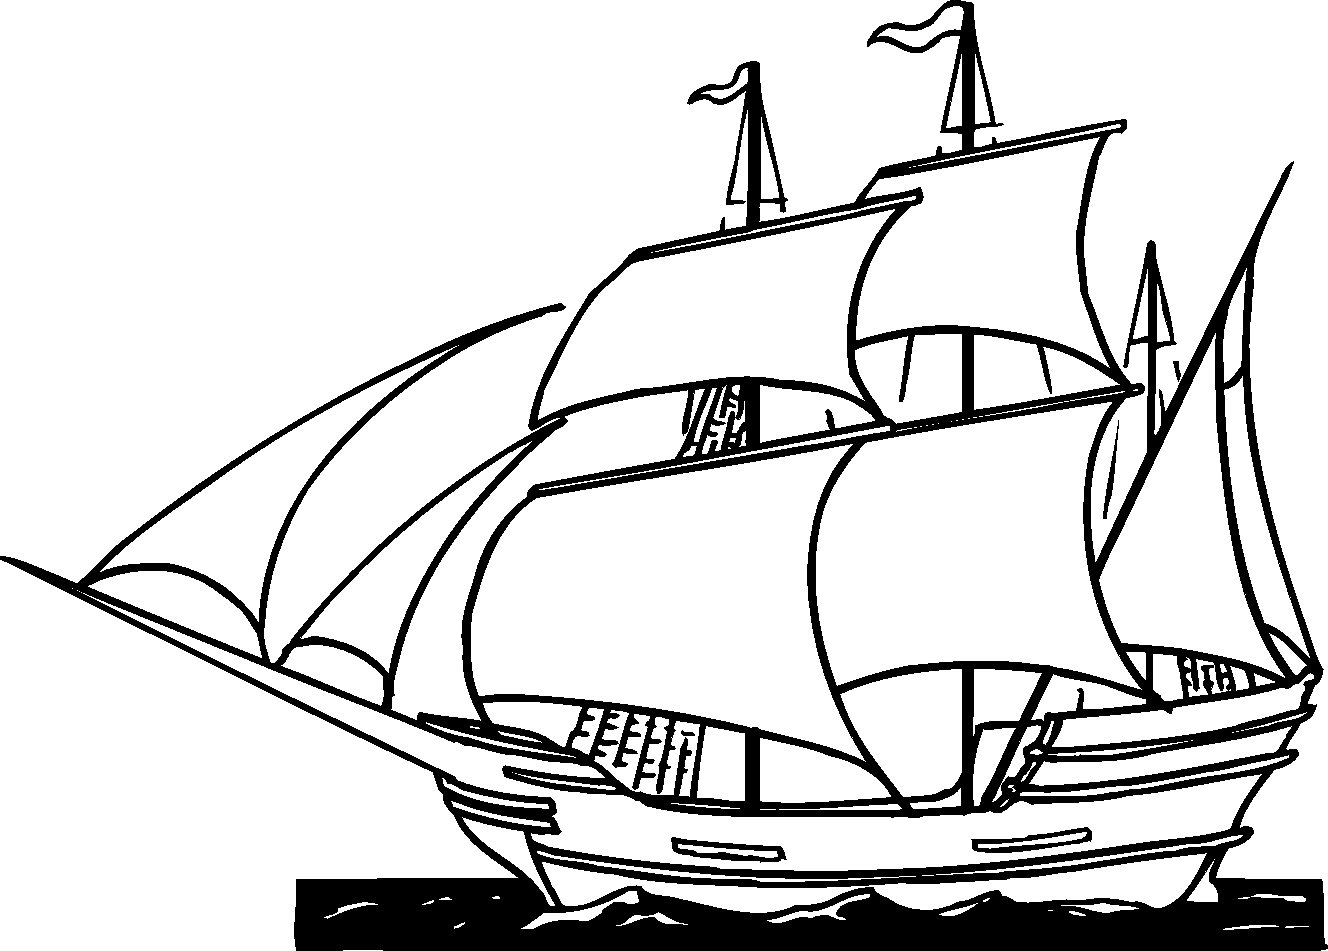 coloring boat for kids free printable boat coloring pages for kids best boat coloring for kids